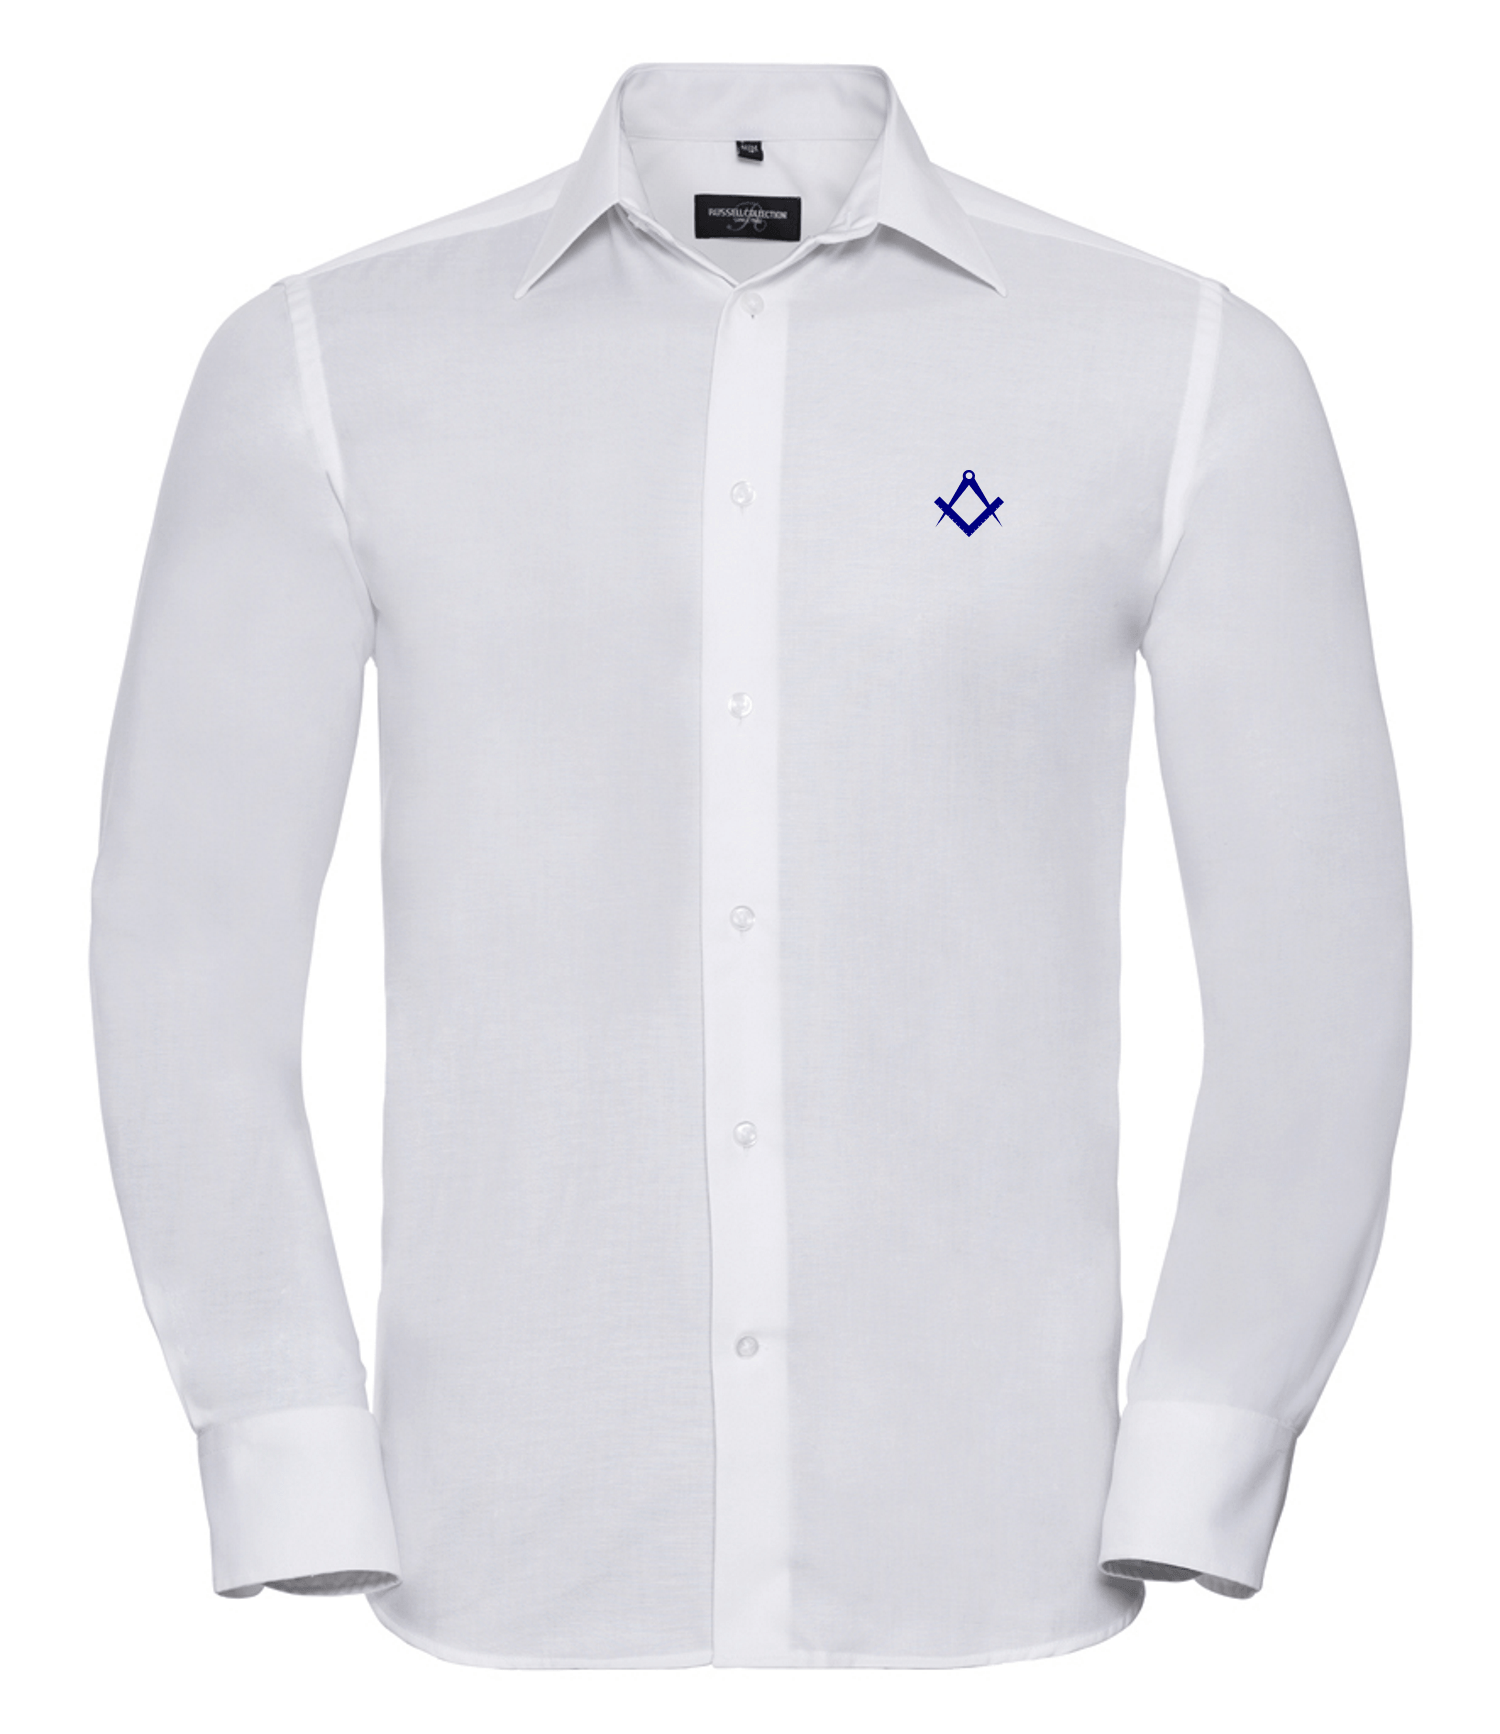 Smart Casual Shirt Printed A Lovely Freemasons Gift Or Present